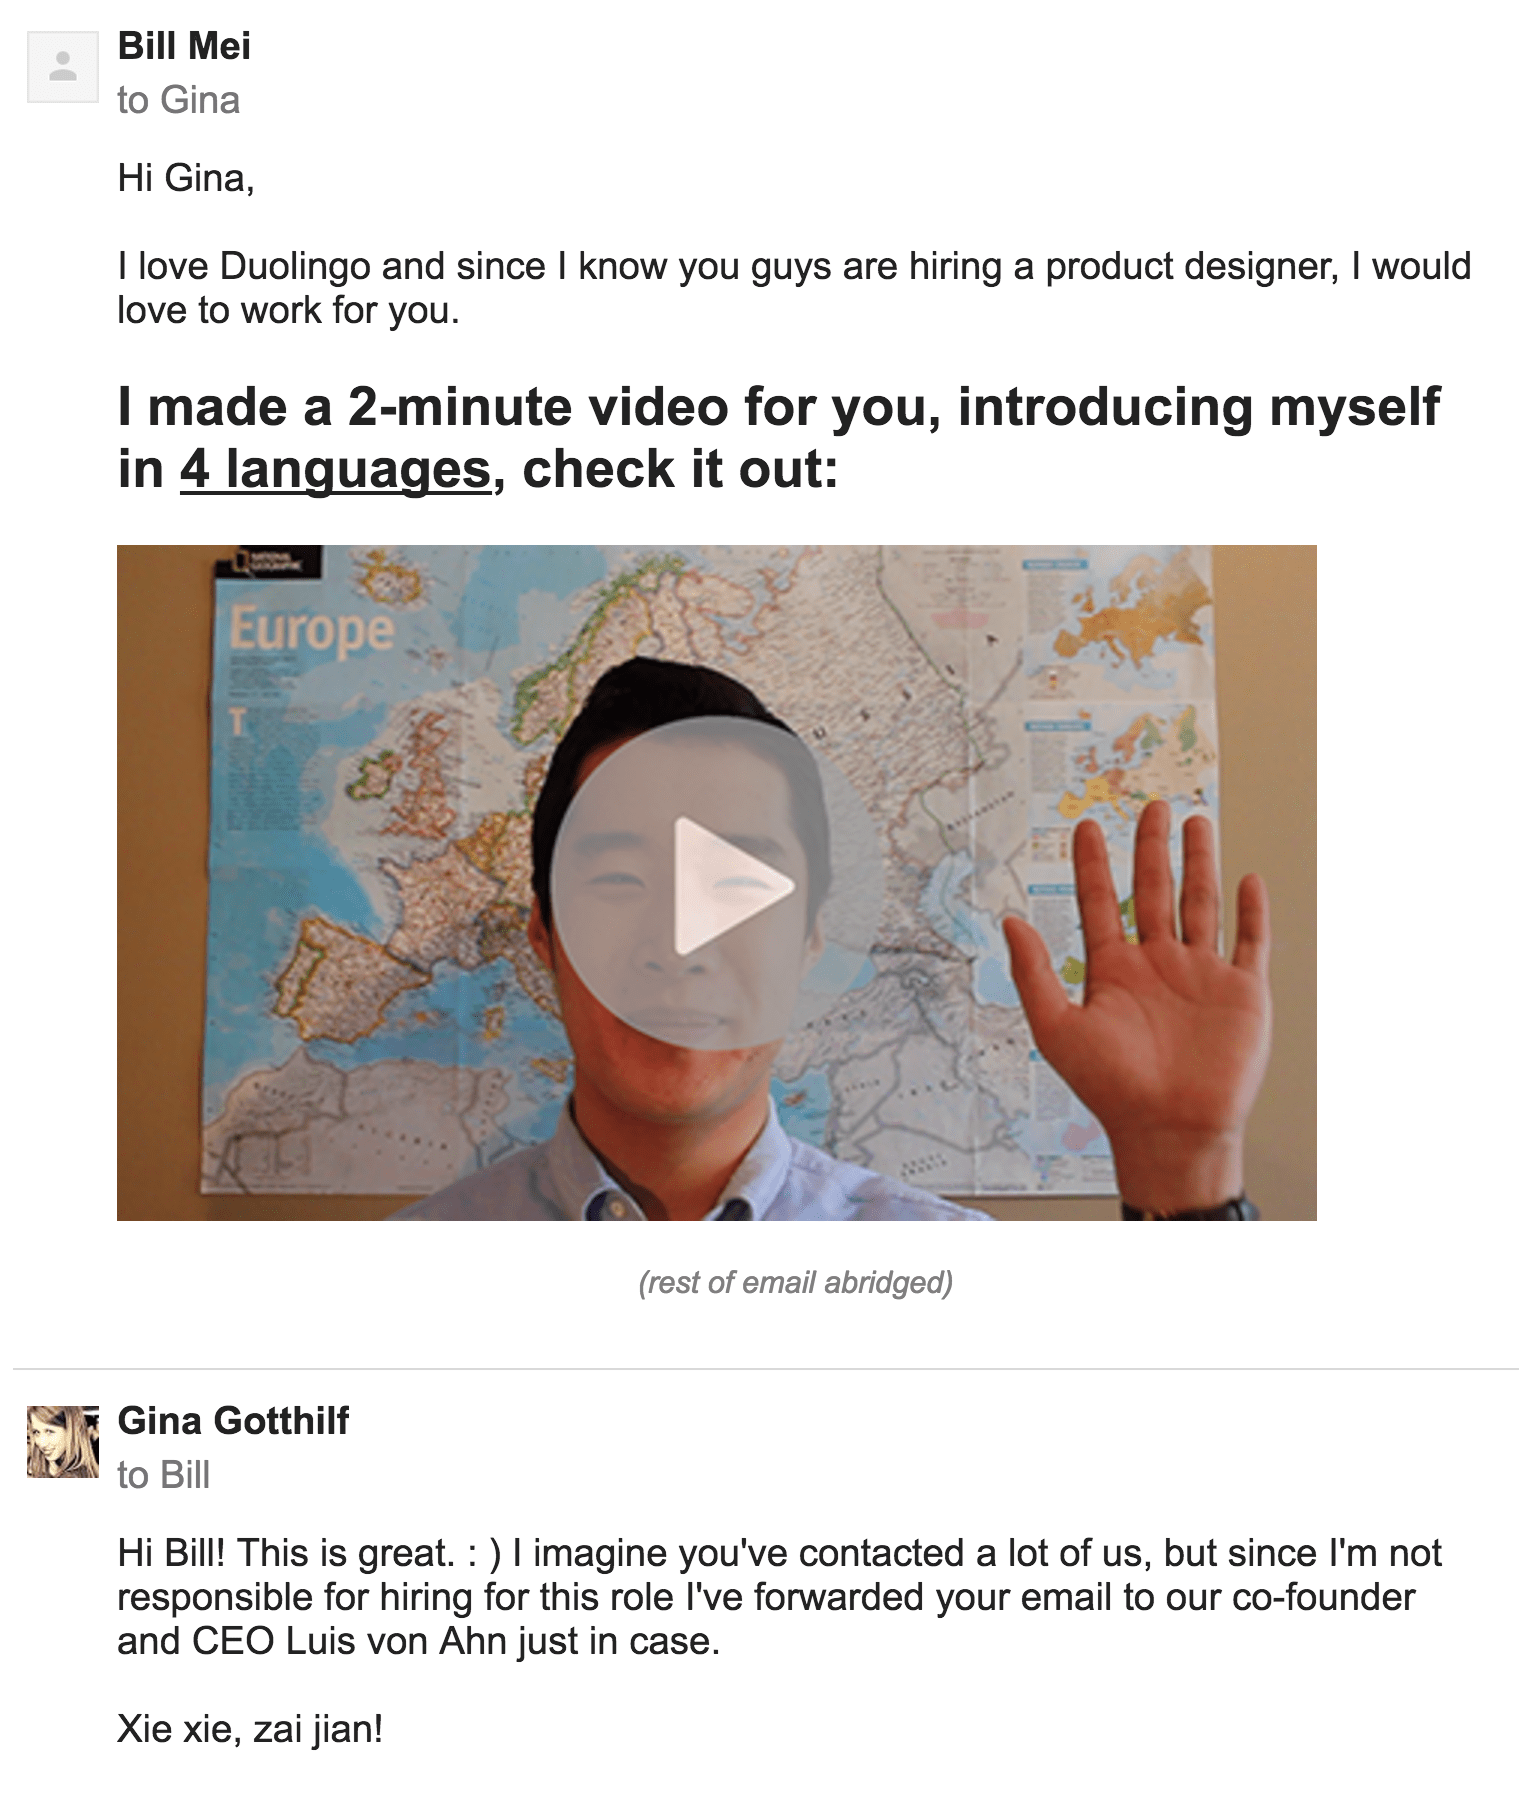 The email I sent to Duolingo to apply for a job